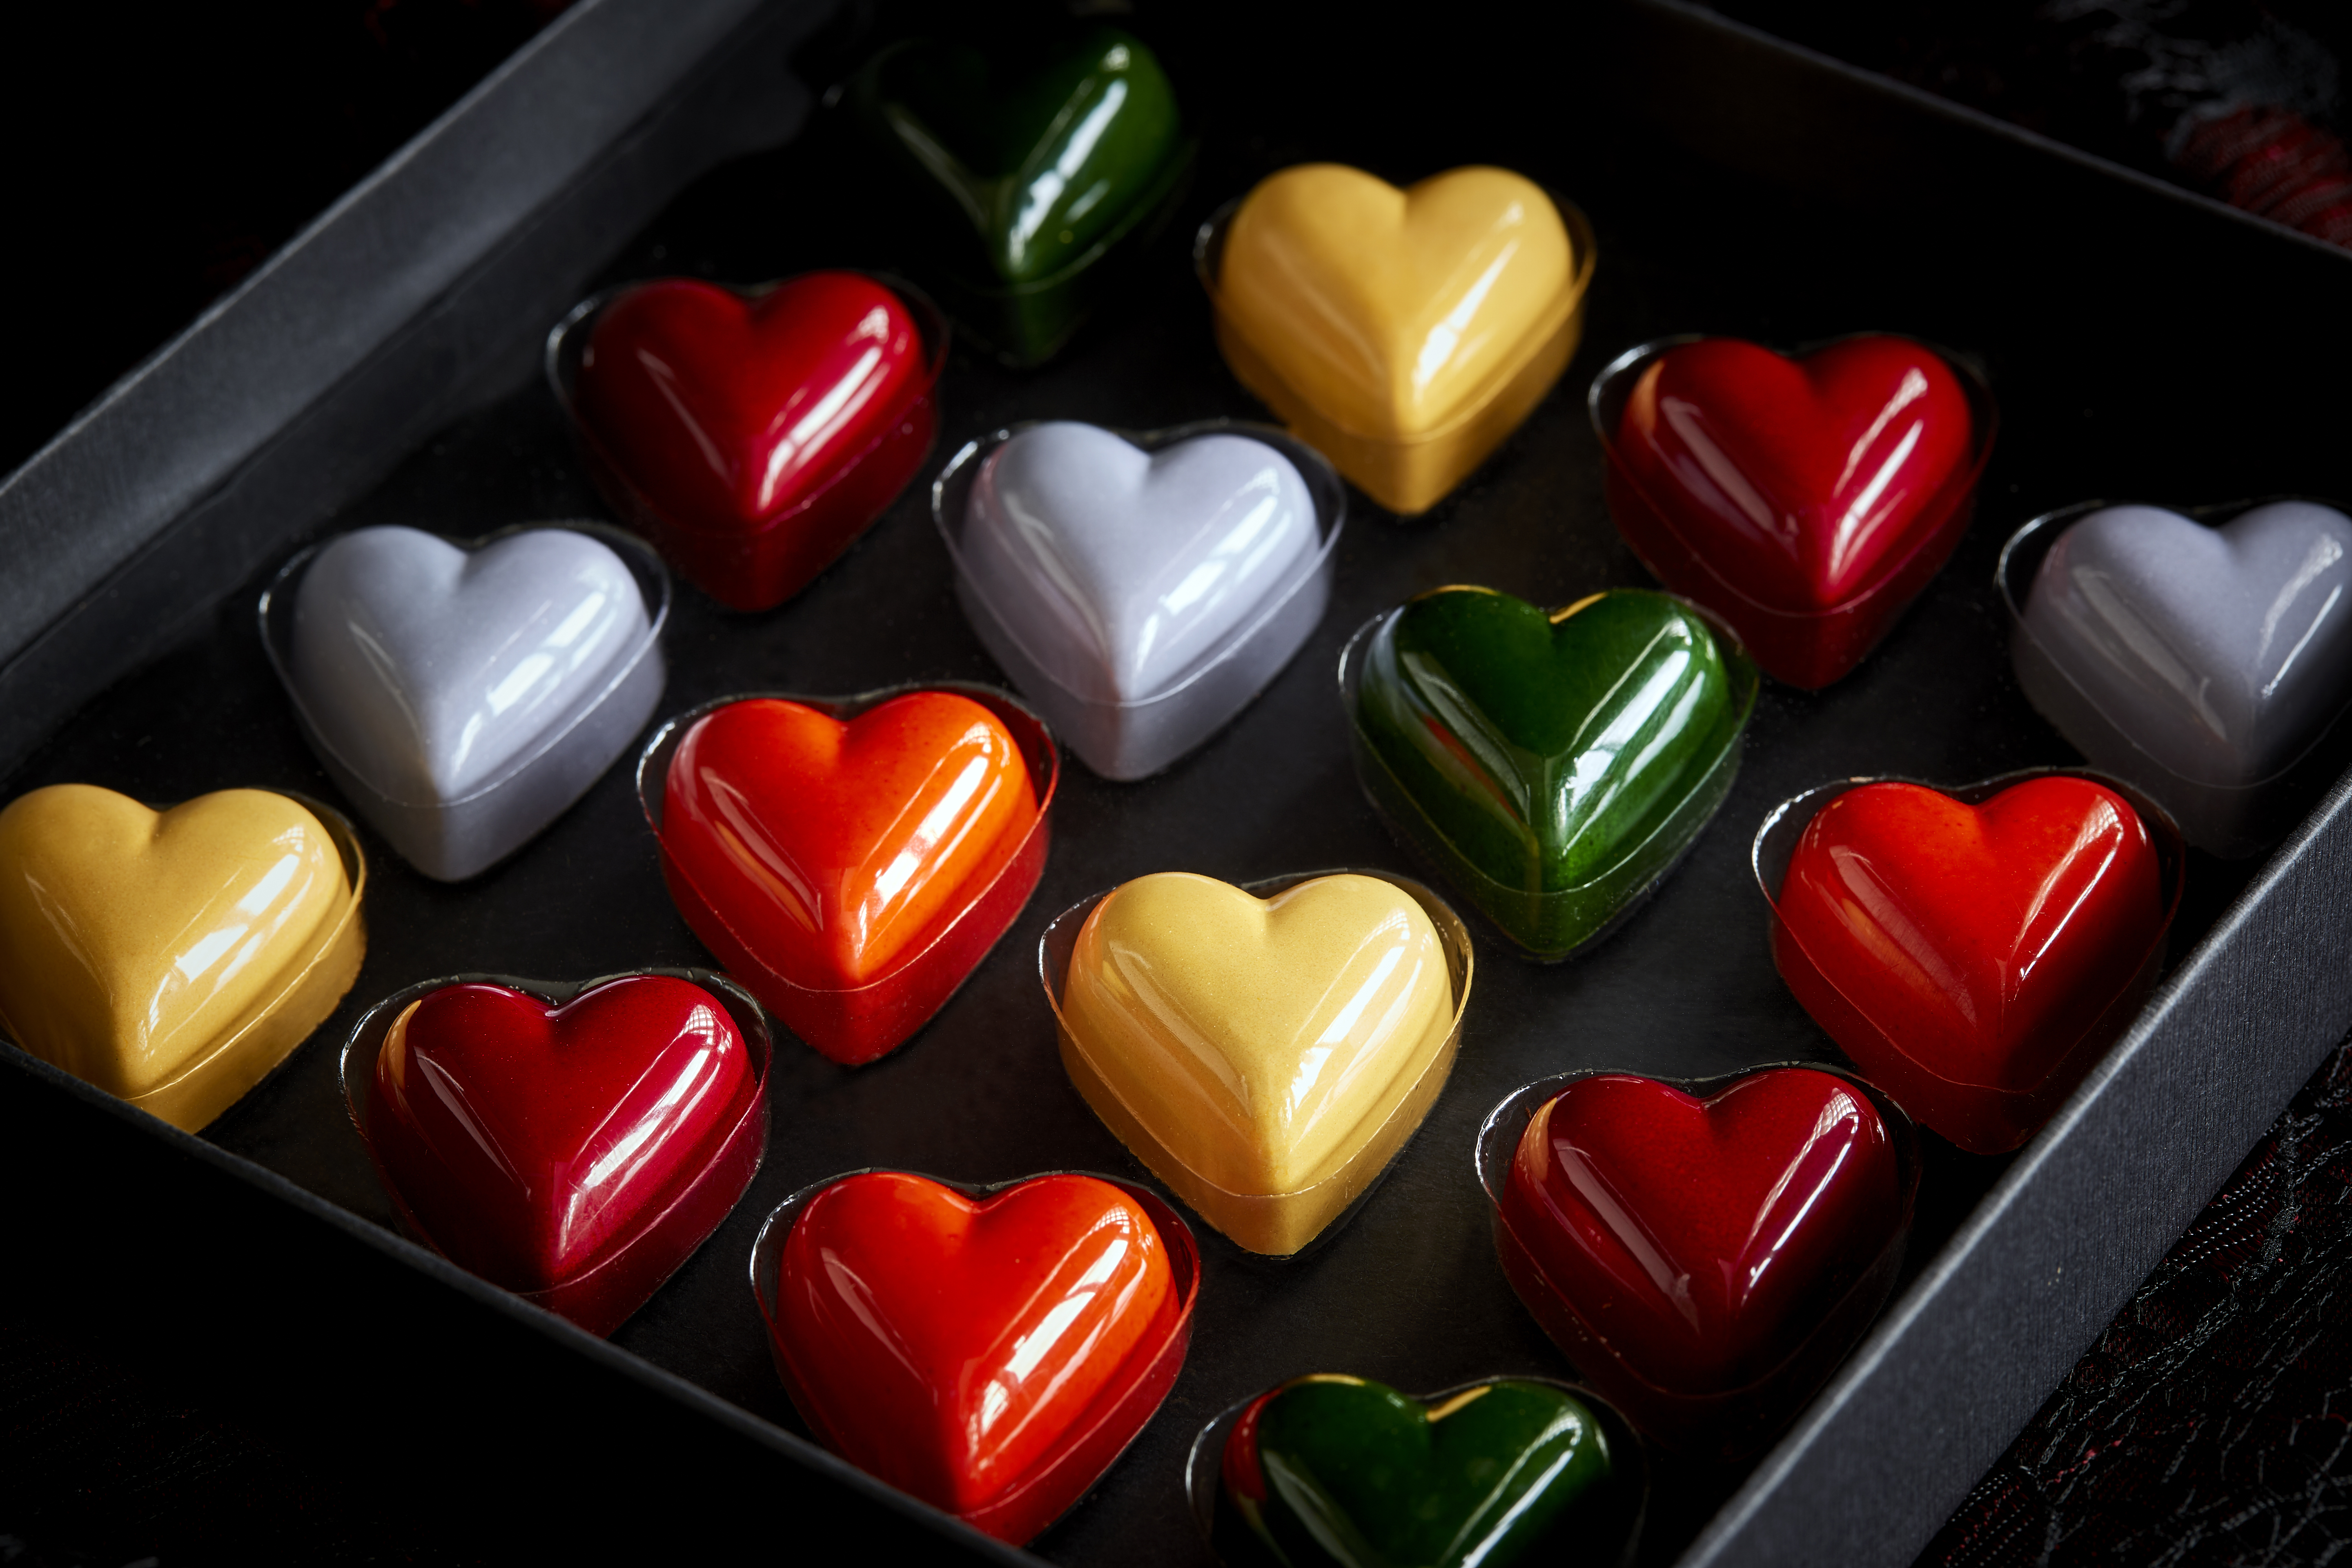 box of heart-shaped chocolates in different colors